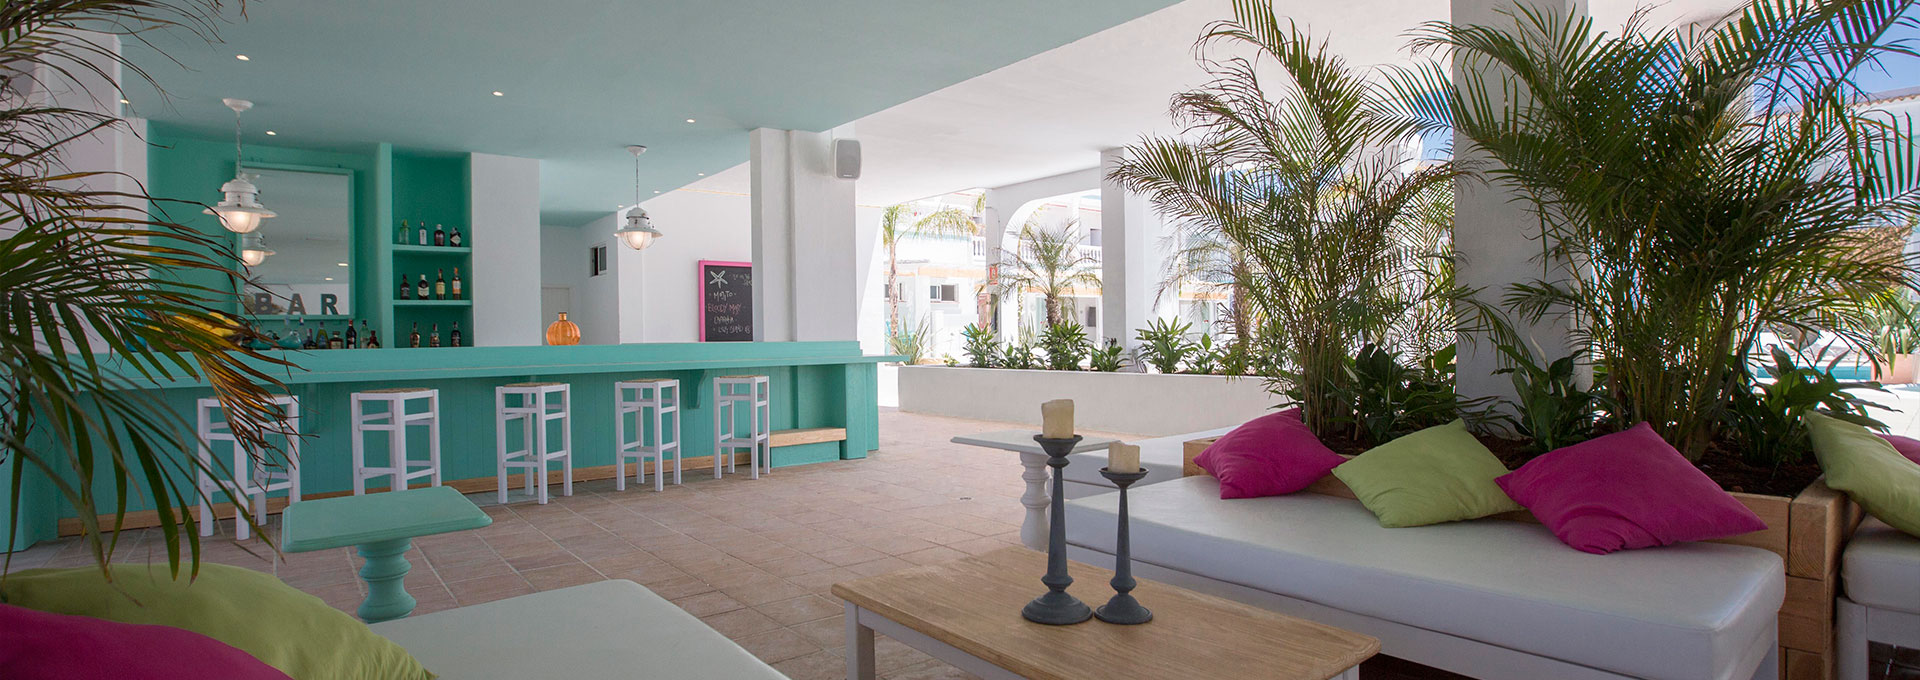 https://images.neobookings.com/cms/thebeachstaribiza.com/section/contact-and-location/pics/contact-and-location-8w6d8y1471.jpg